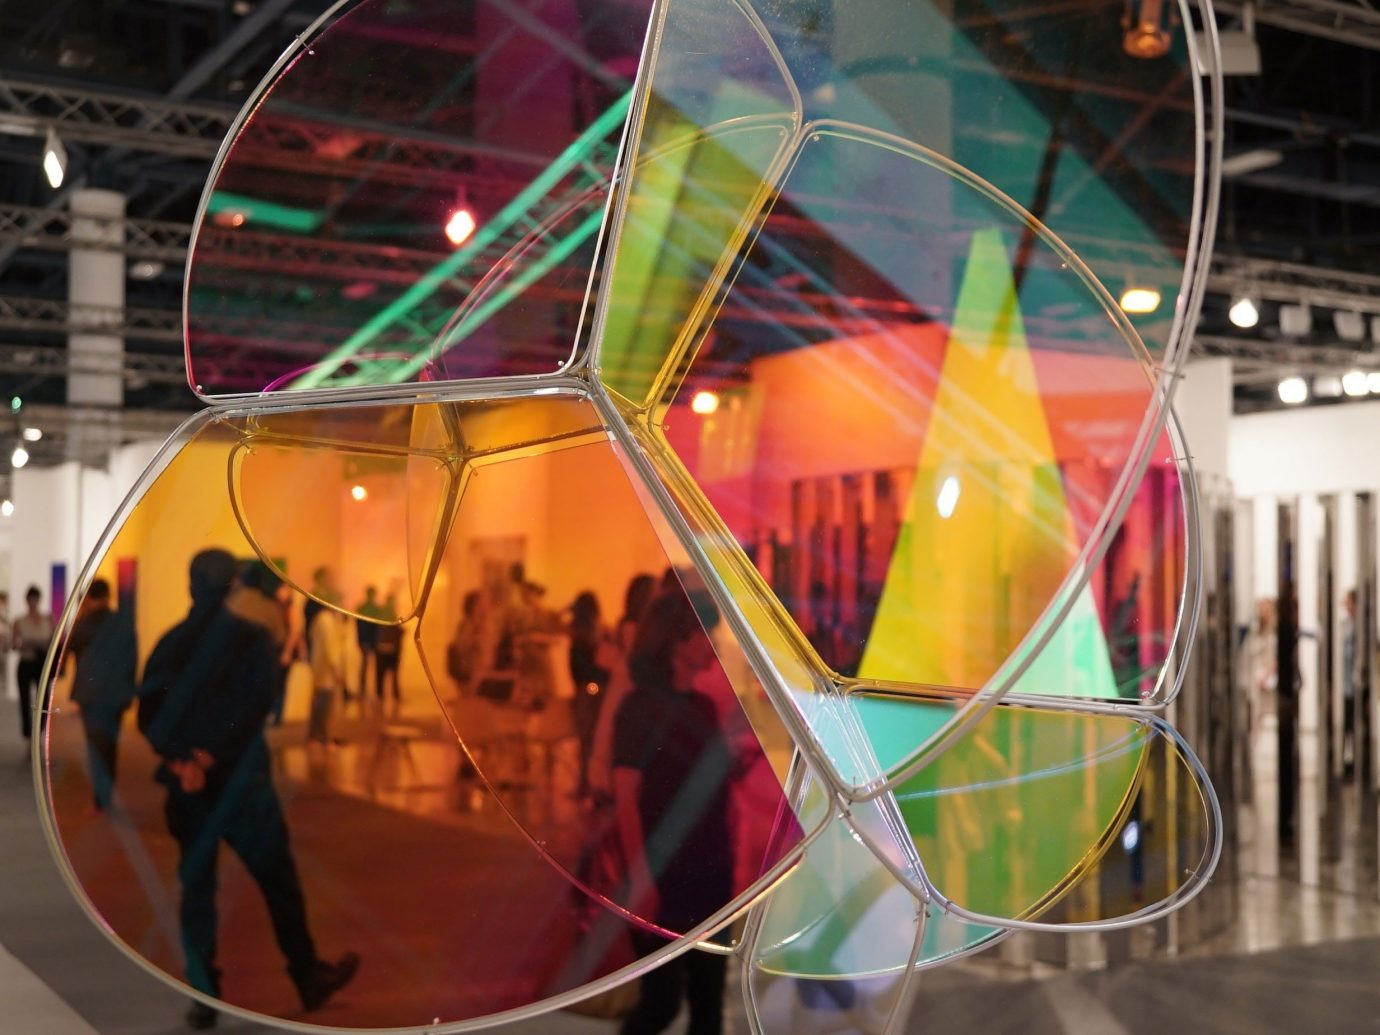 Arts + Culture color indoor tourist attraction vehicle glass exhibition colorful